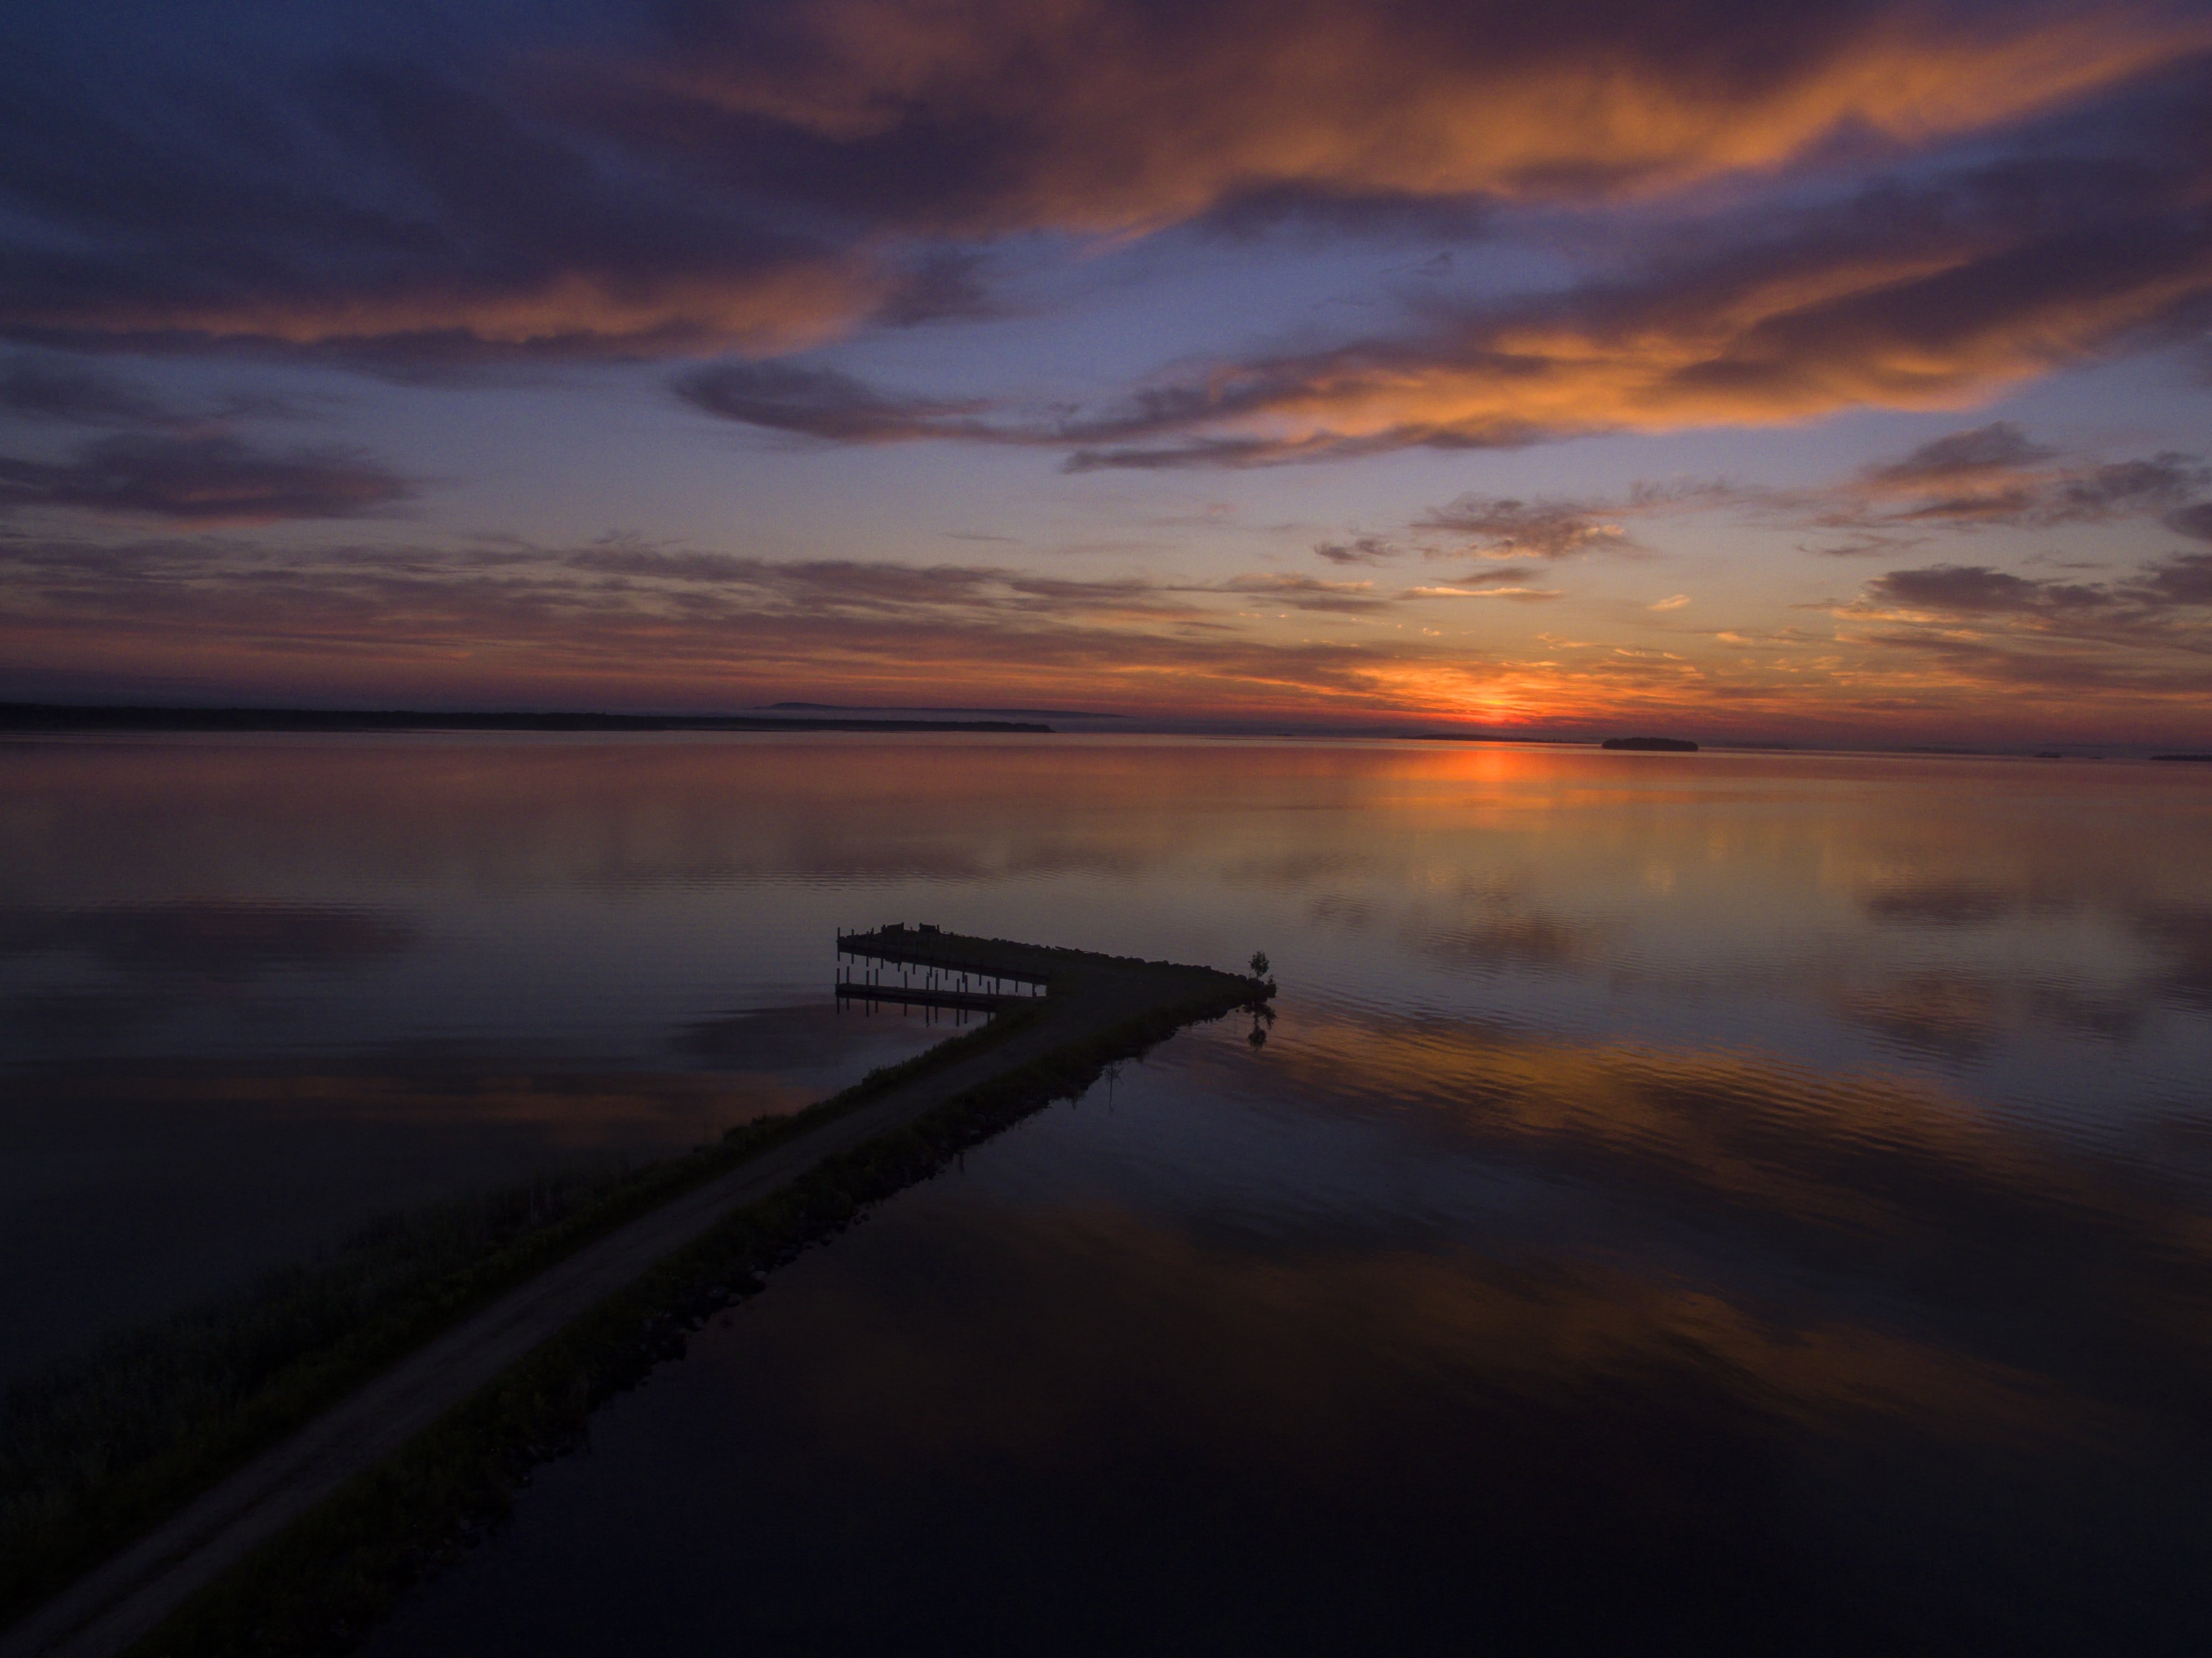 View of a coastline in Michigan with a colorful sunrise at the horizon